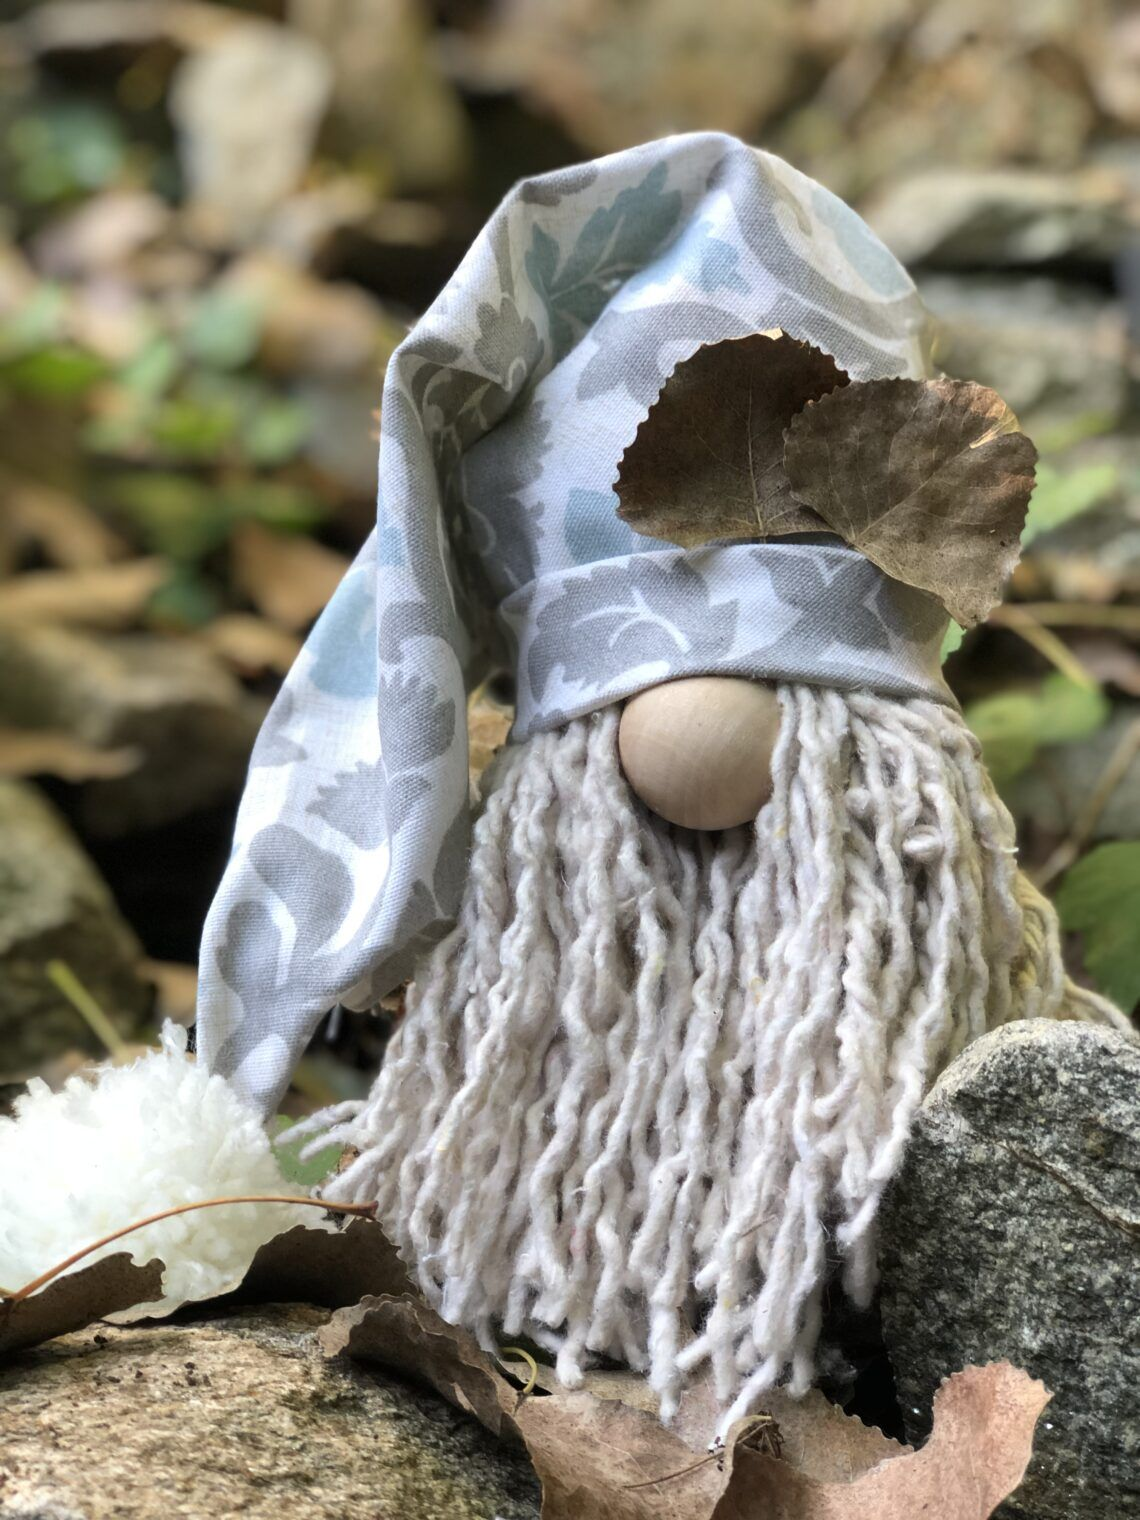 How To Make Adorable Dollar Tree Gnome Diy Dulce's Blog